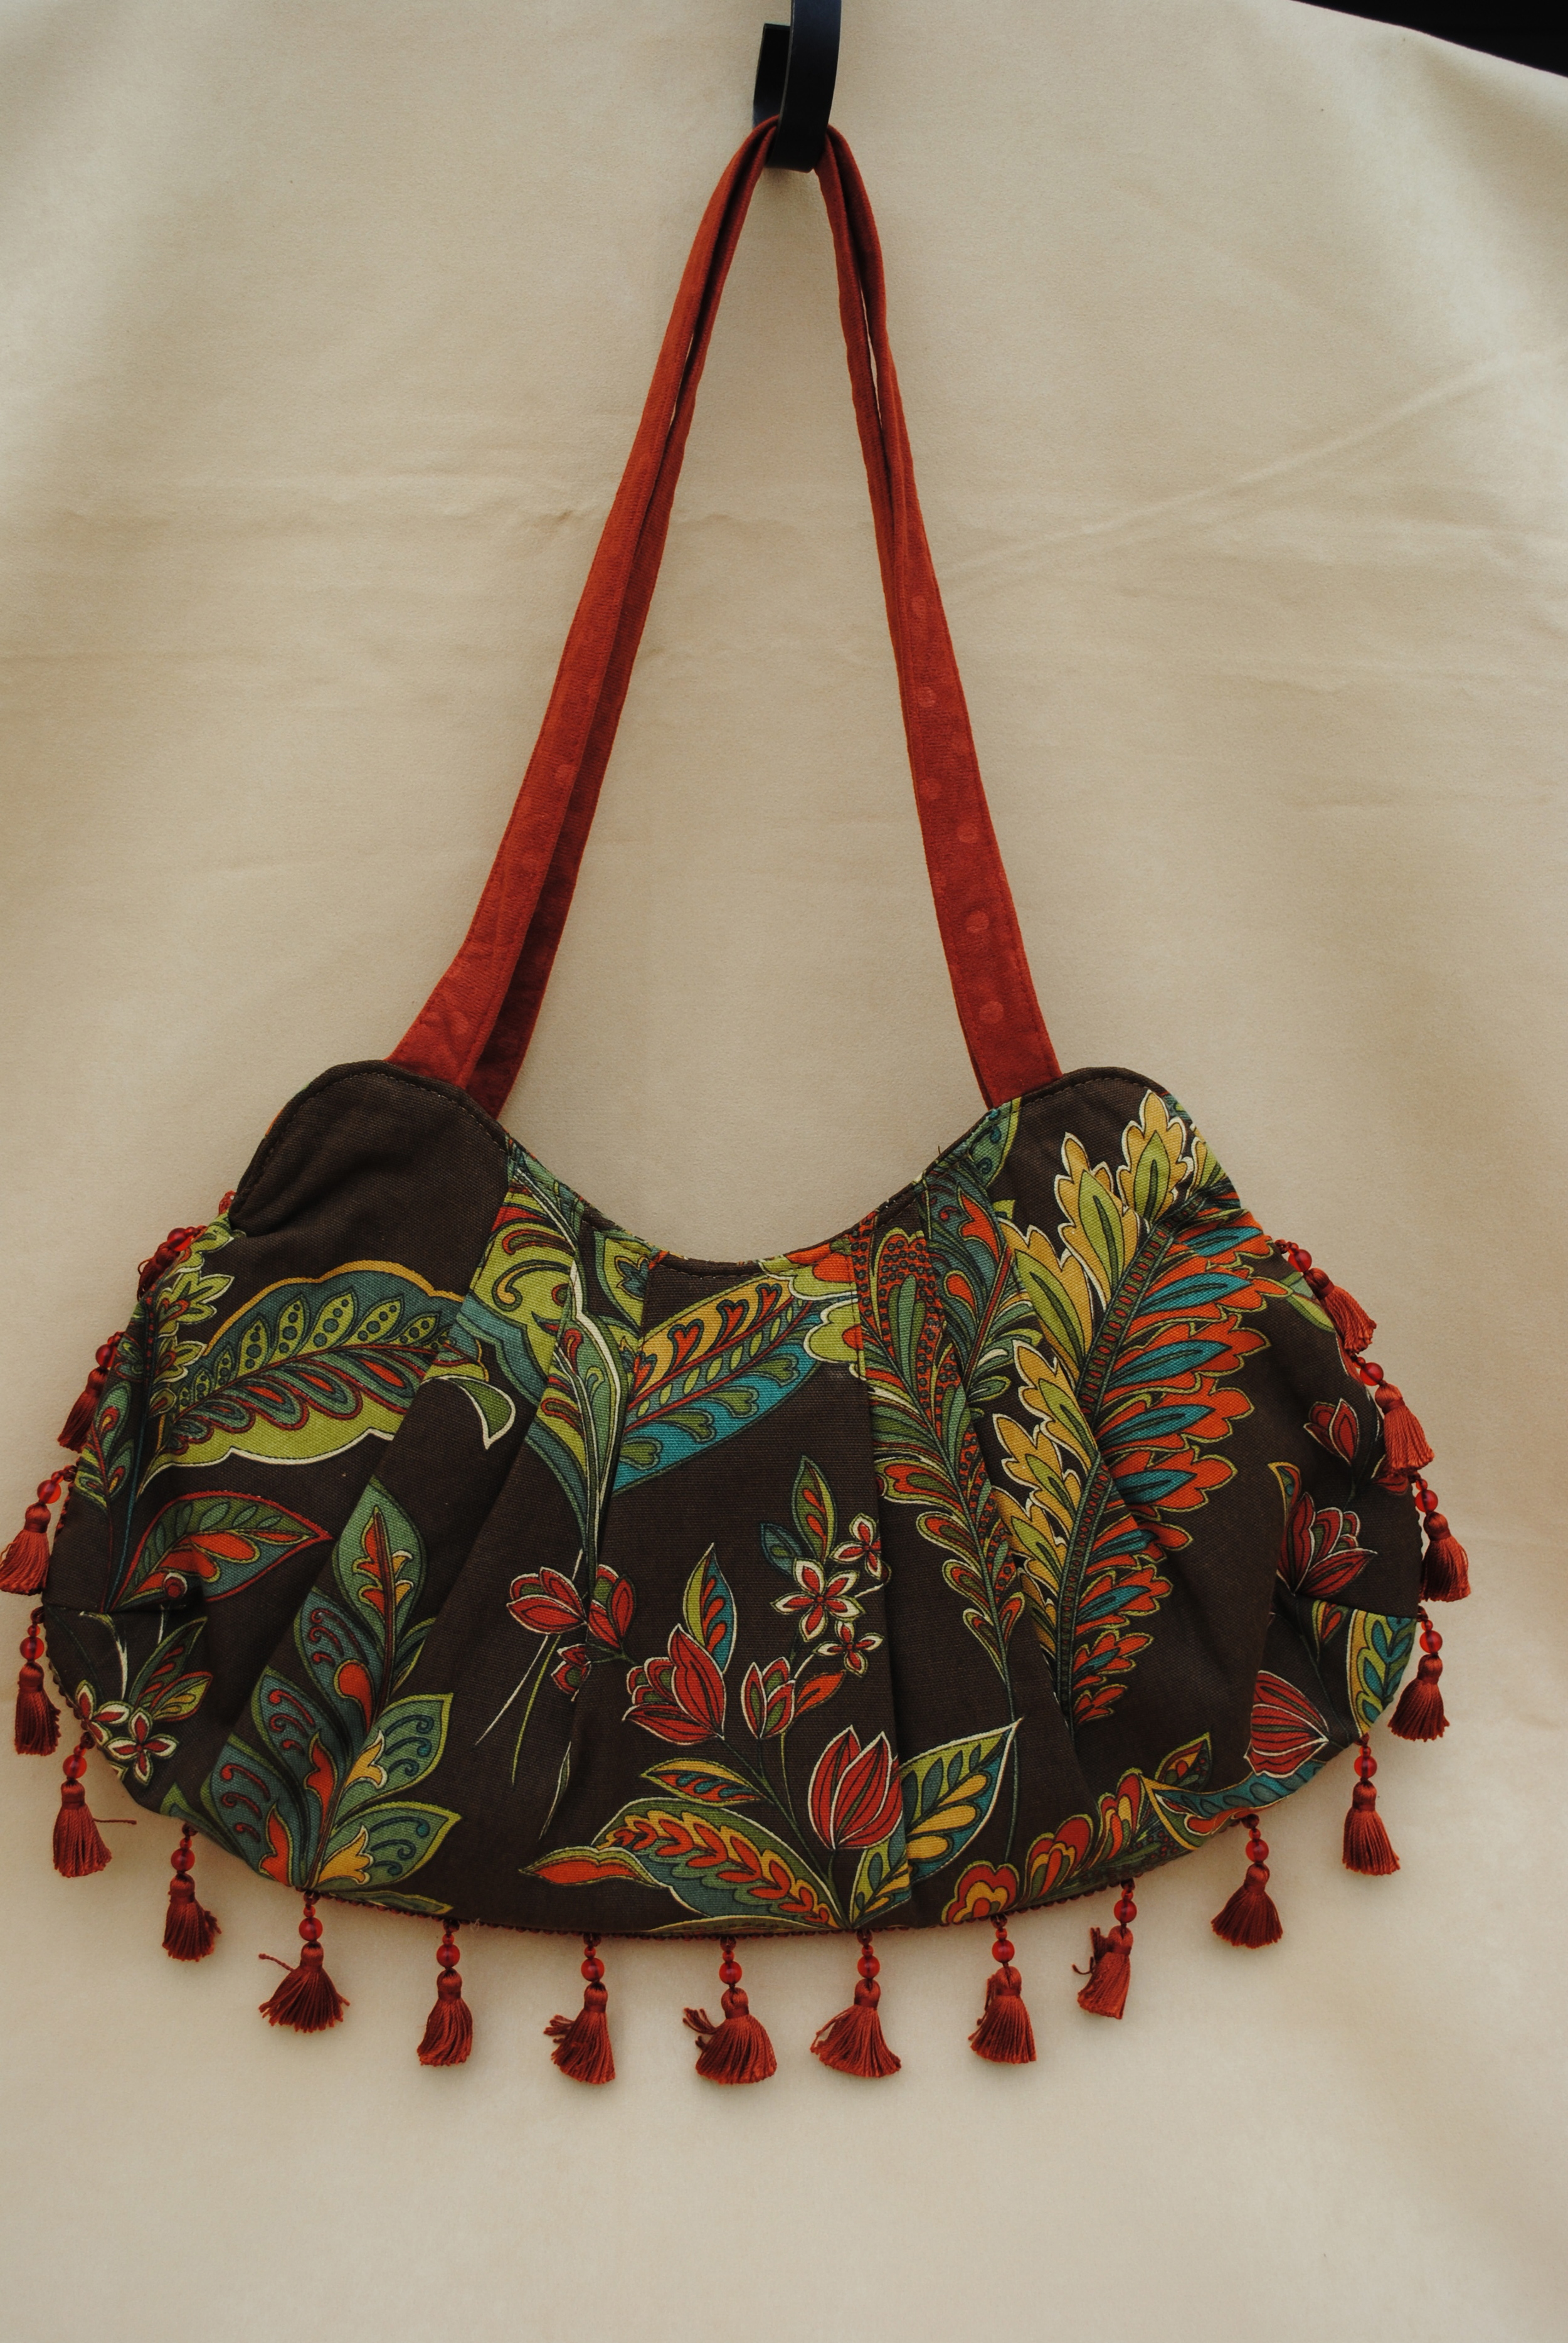 Shaista Pleated Bag in Earthy Brown and Orange